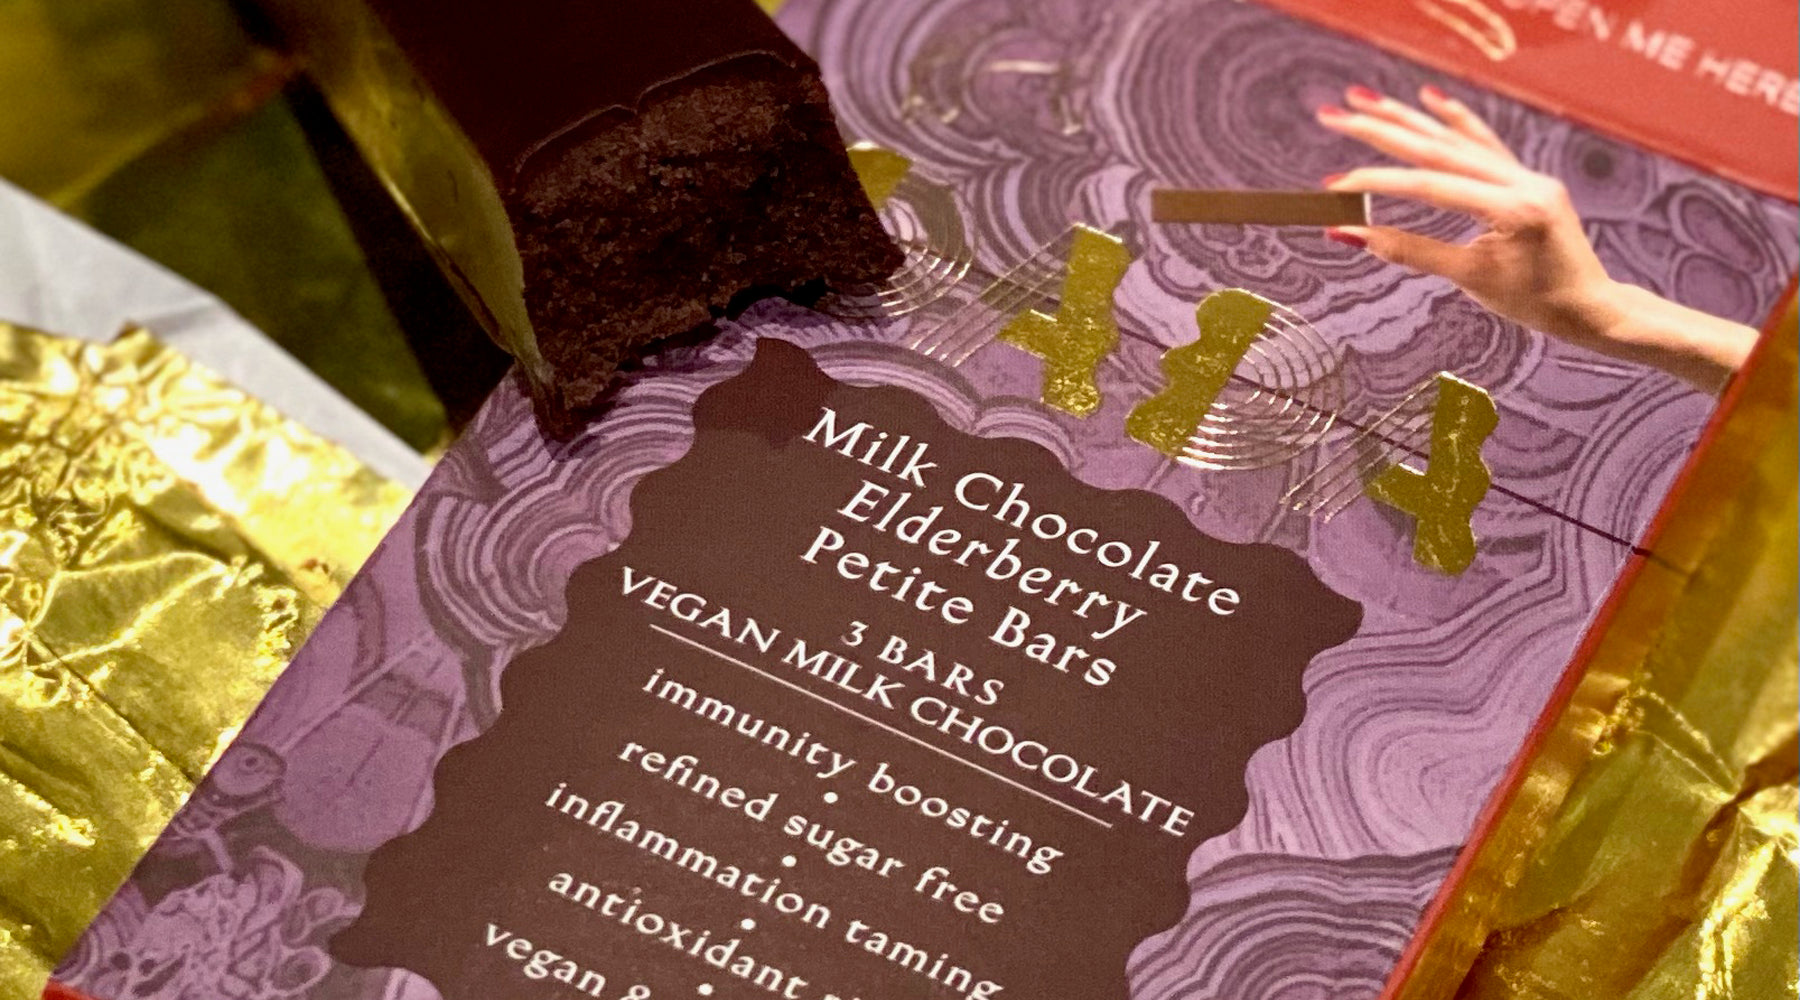 vegan, milk, chocolate, elderberry, petite, bars, sugar free, dairy free, truffle, dada daily, decadence, ritual, elevate, snacks